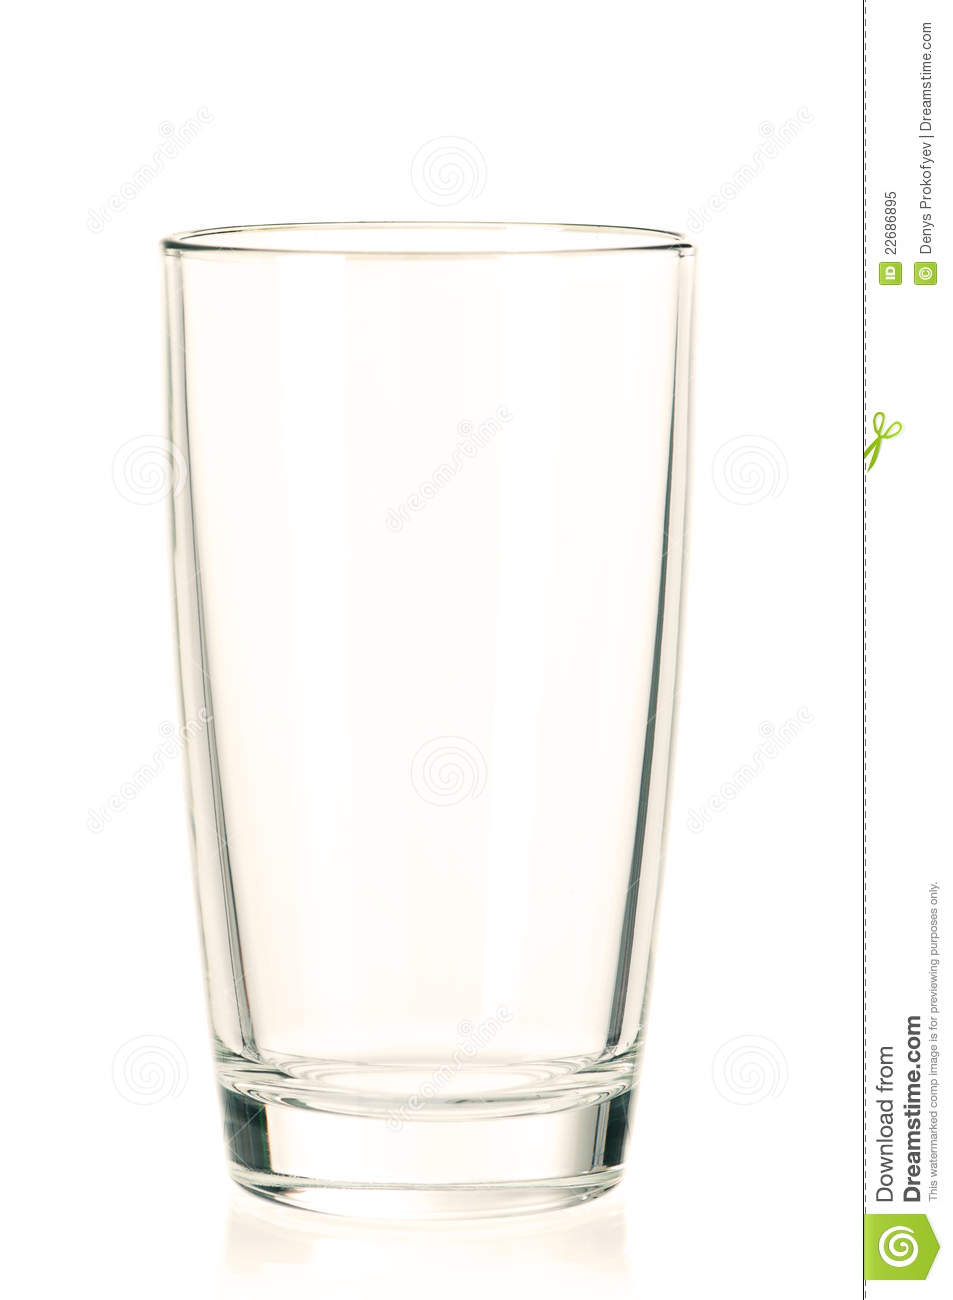 Empty glass for water, juice or milk on white background.